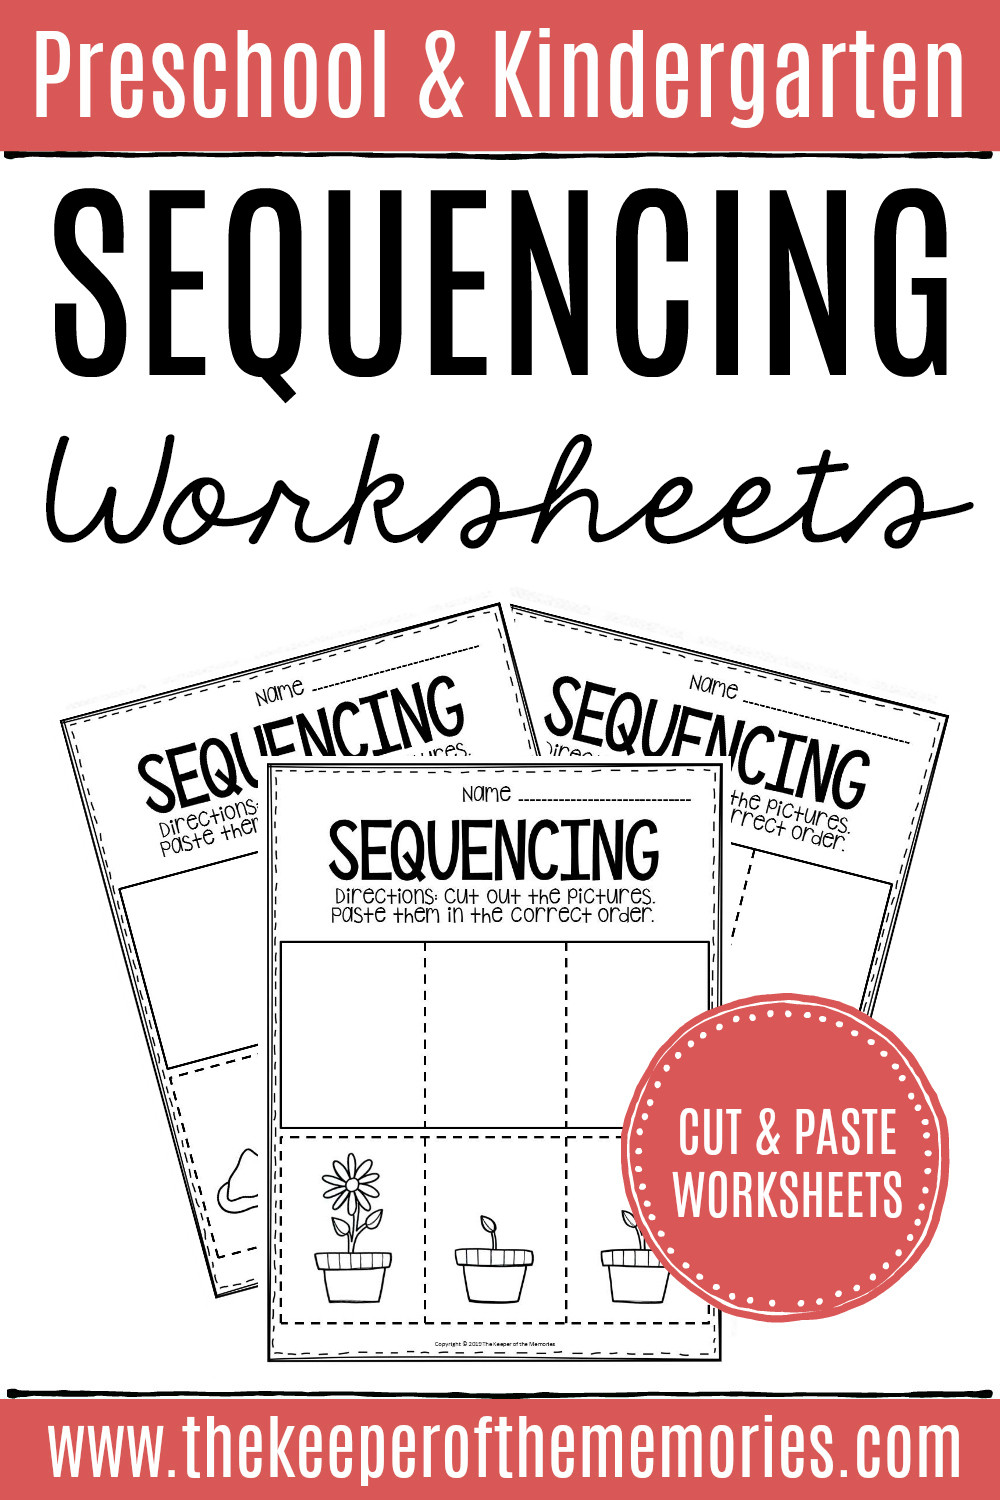 Printable Sequencing Worksheets 3 Step Sequencing Worksheets the Keeper Of the Memories